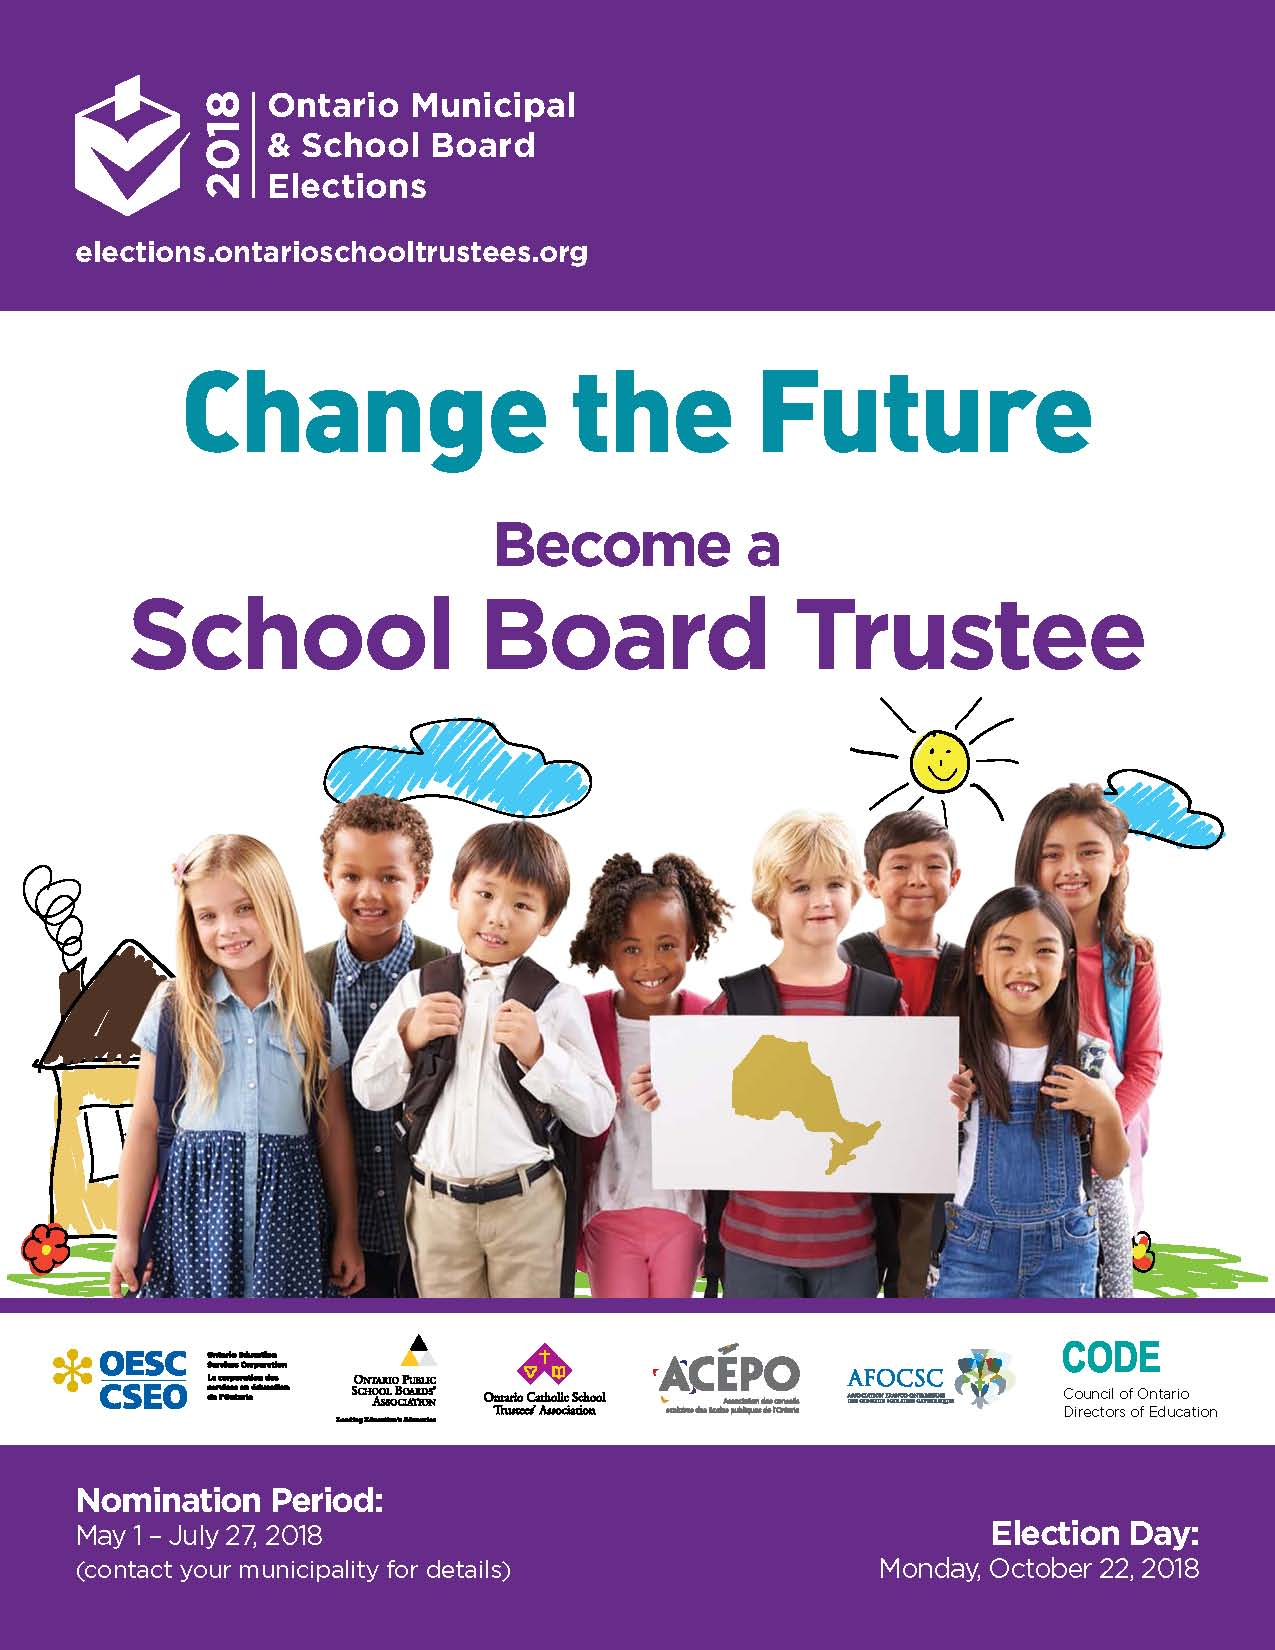 2018 Ontario Municipal & School Board Elections Poster 1 - 8.5 x 11.jpg